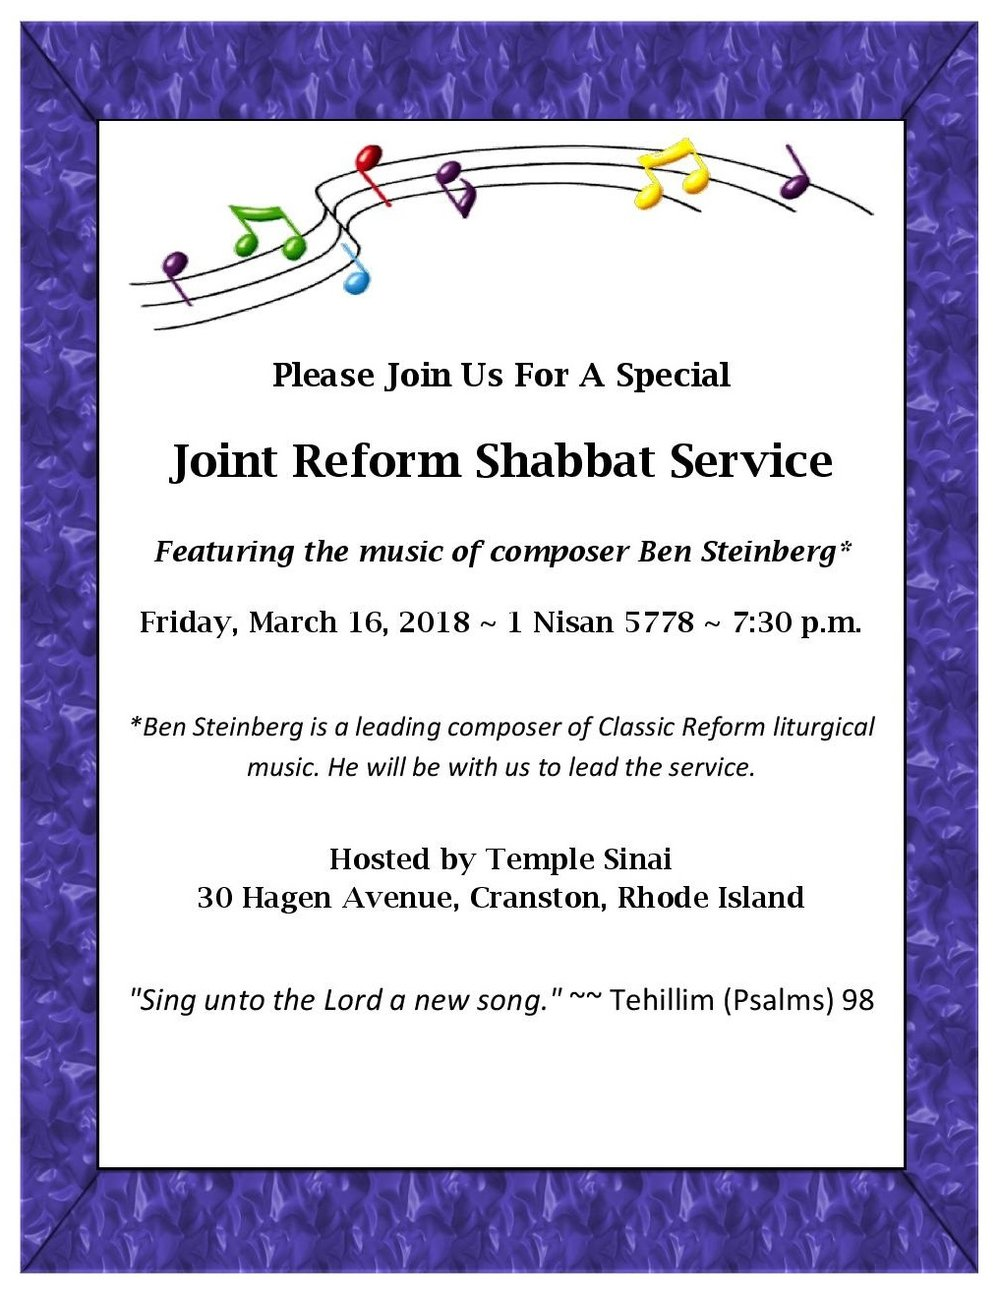 Joint Shabbat Invitation 2018 Congregation Steinberg-page-001.jpg